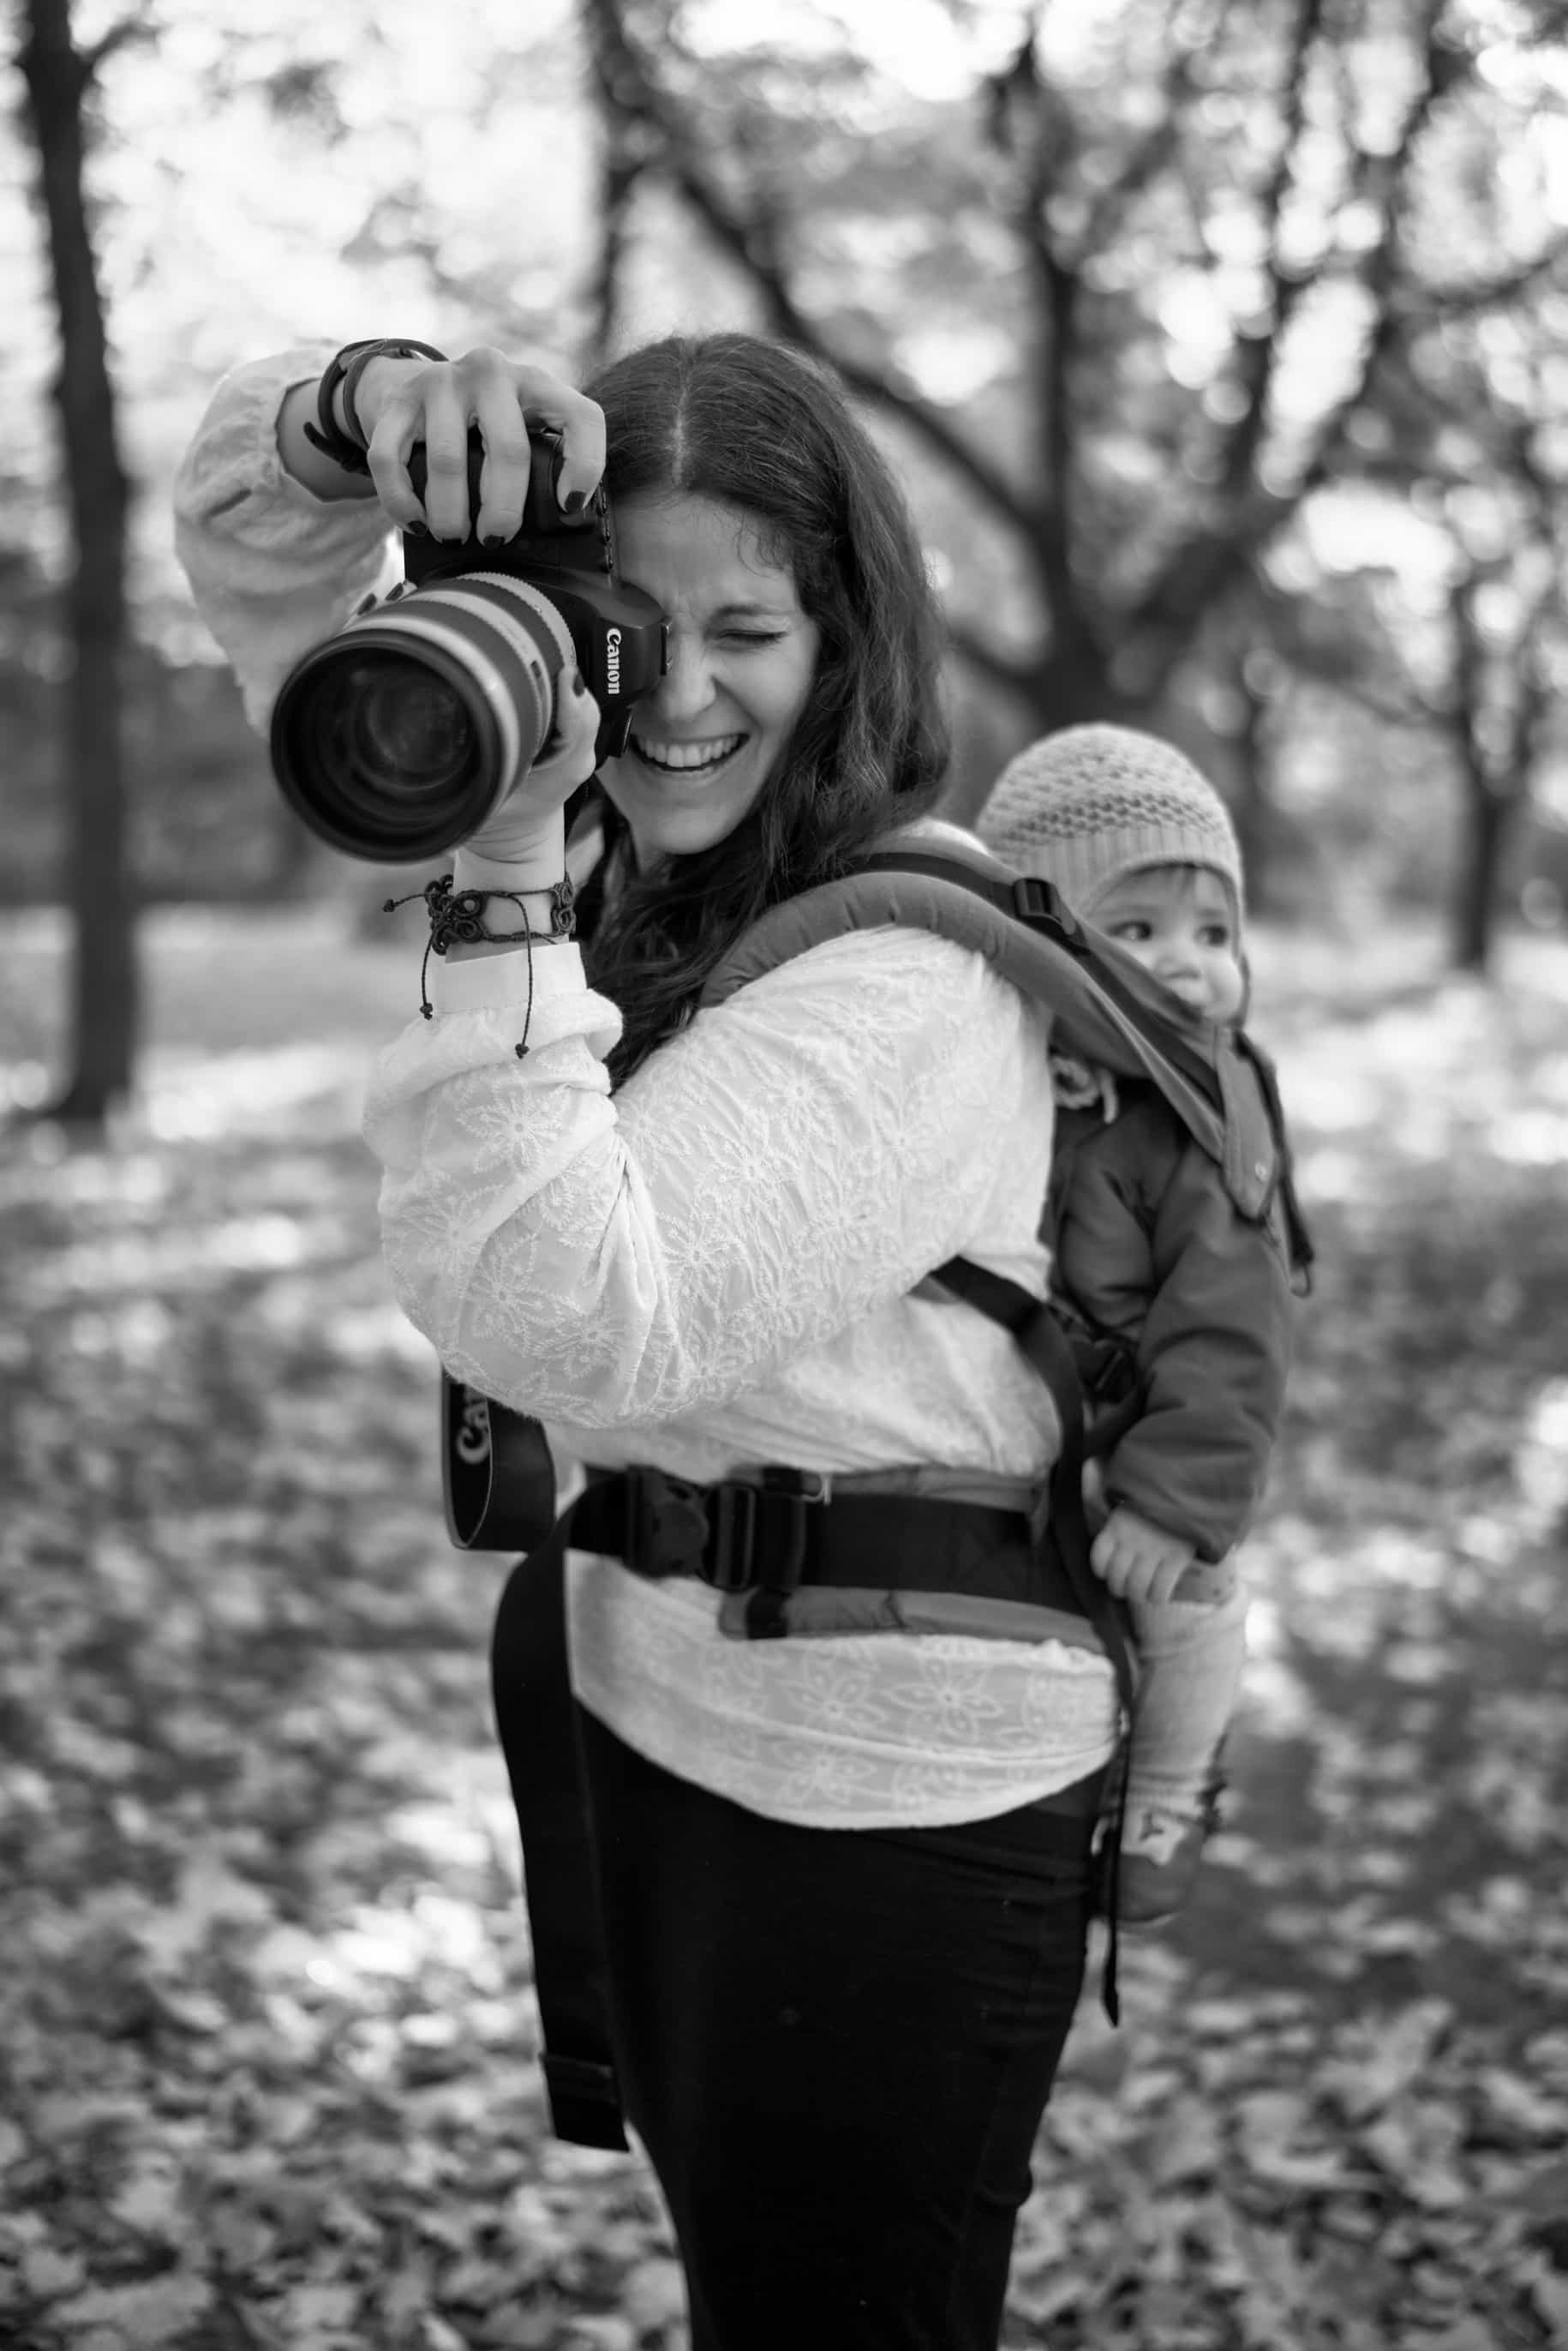 an image of a photographer with a child on her back in a carrier babywearing